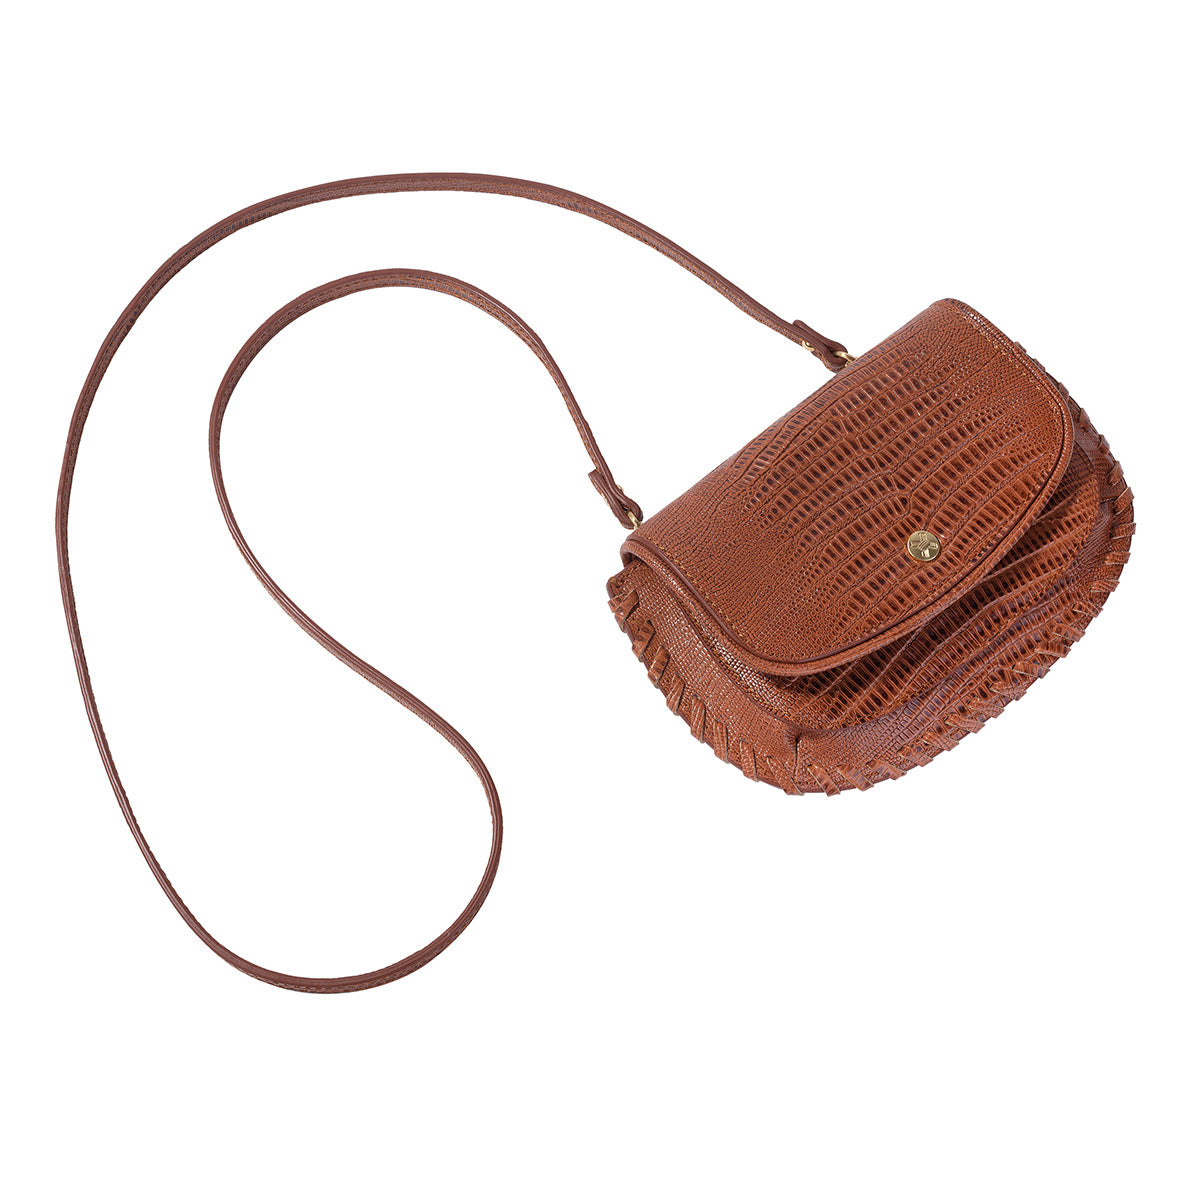 THE BRIGITTE BELT BAG